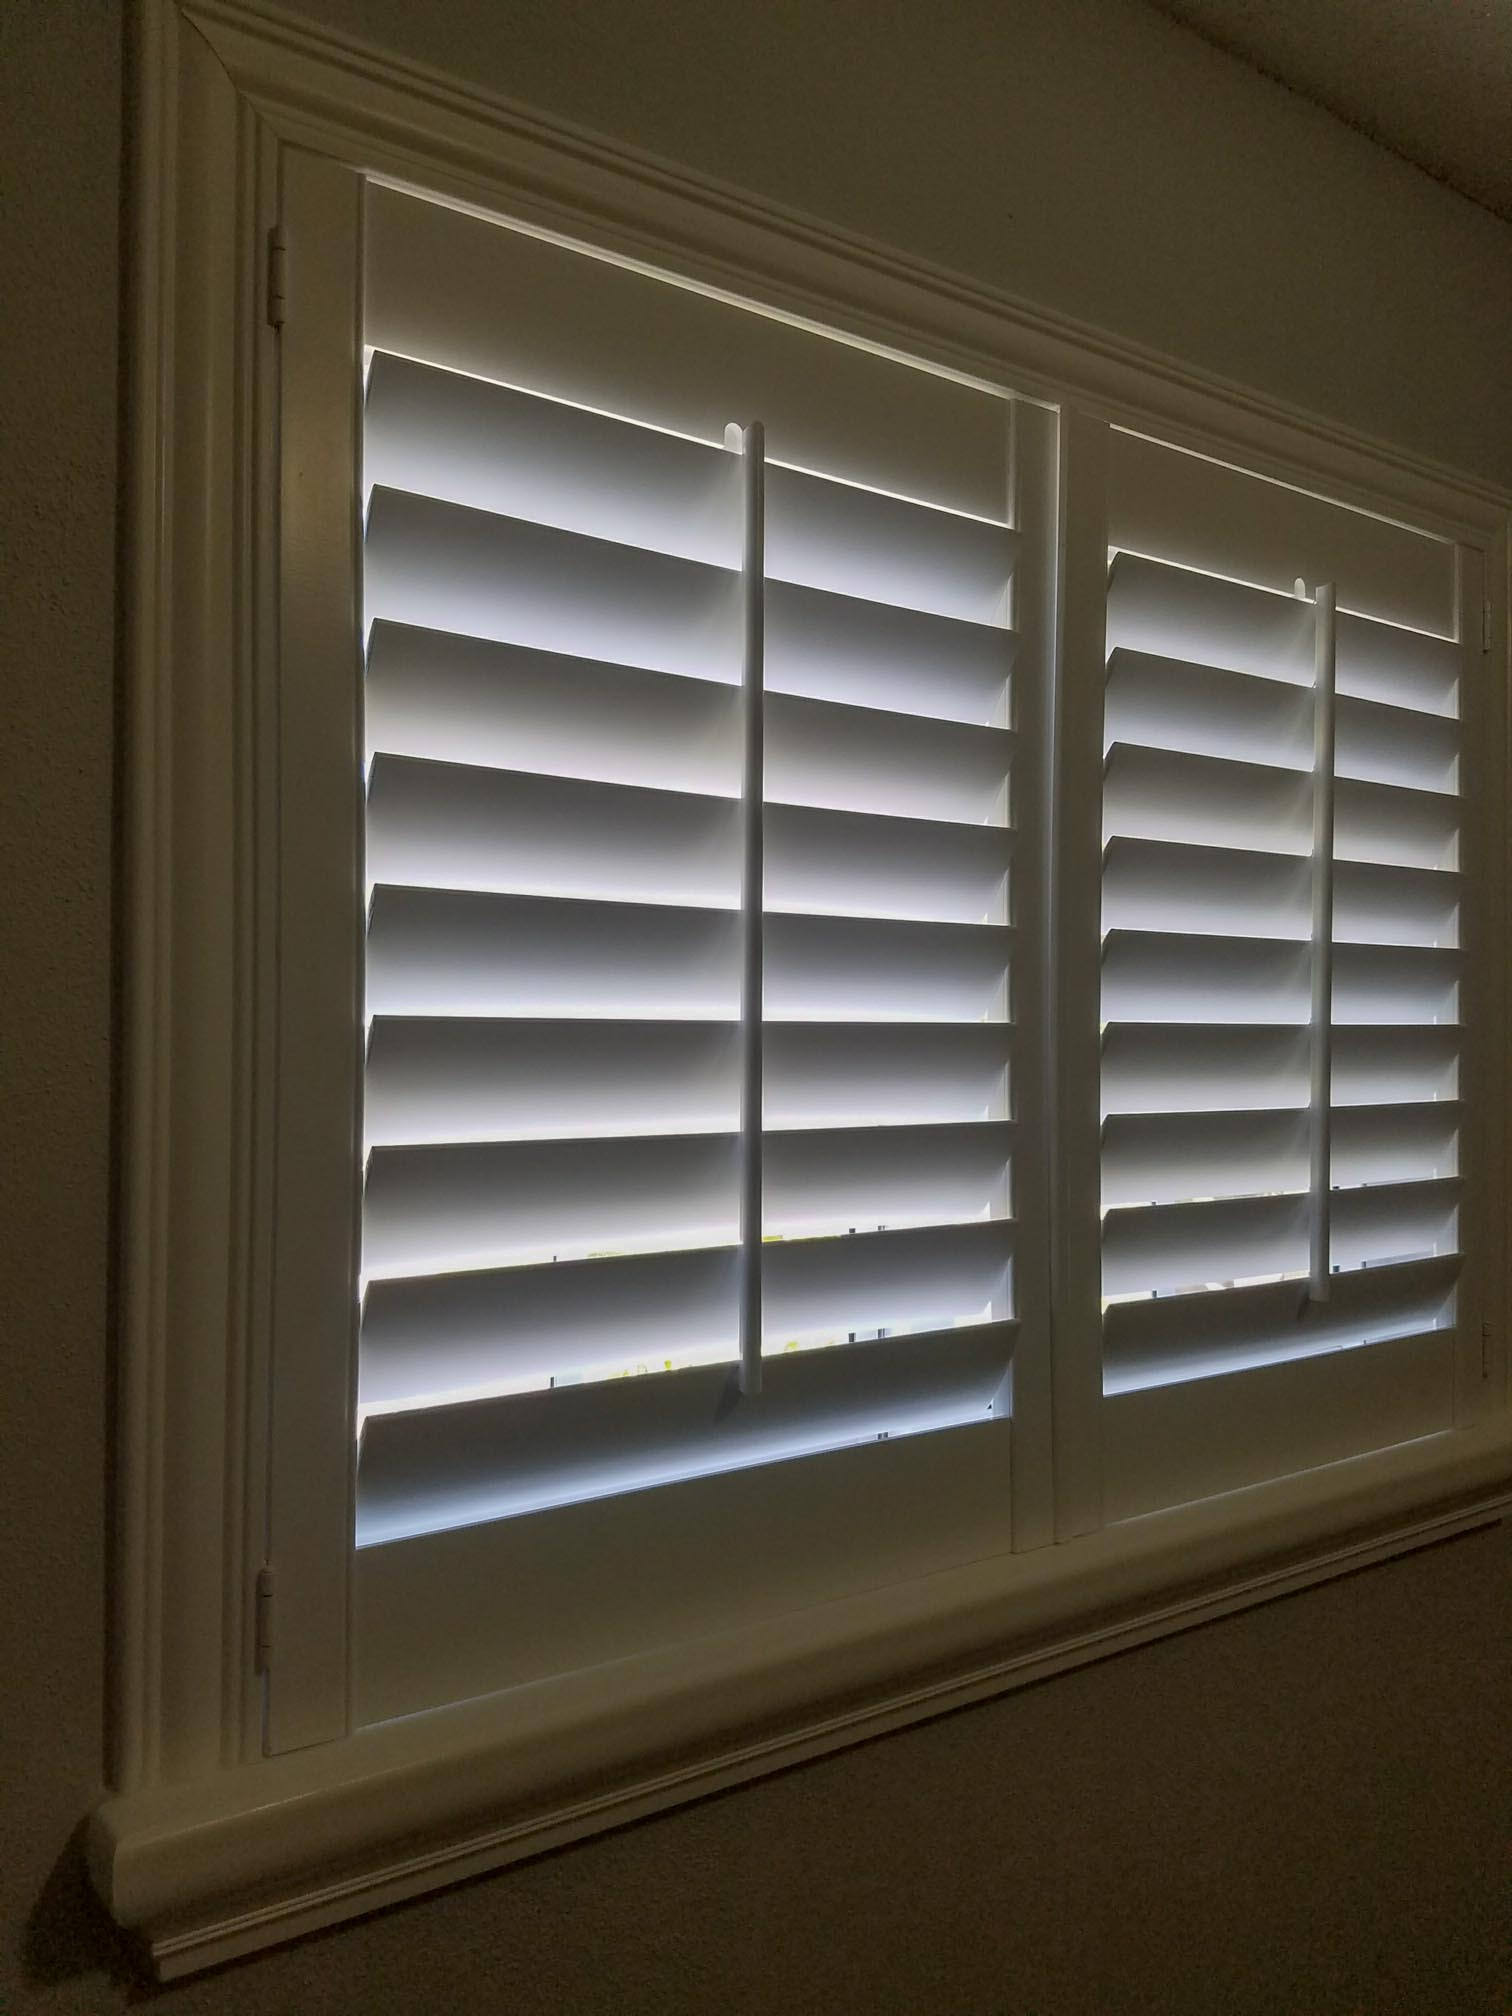 plantation shutters gallery PLANTATION SHUTTERS GALLERY 20170821 173342